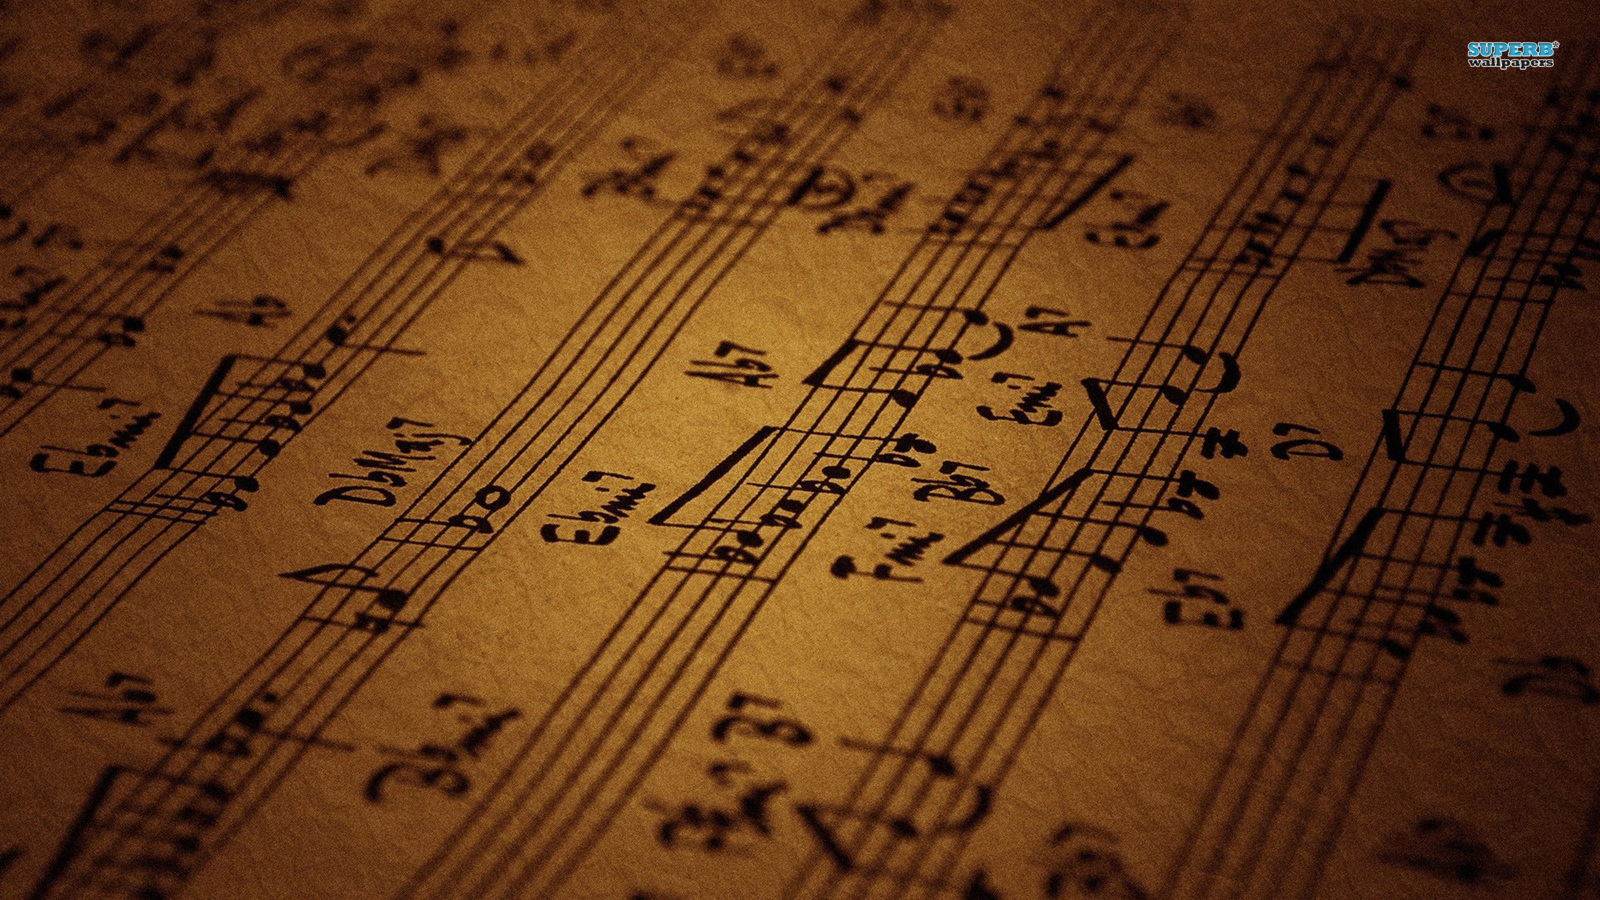 Classical Music Wallpaper: Classical Music Images Sheet Music HD Wallpaper And